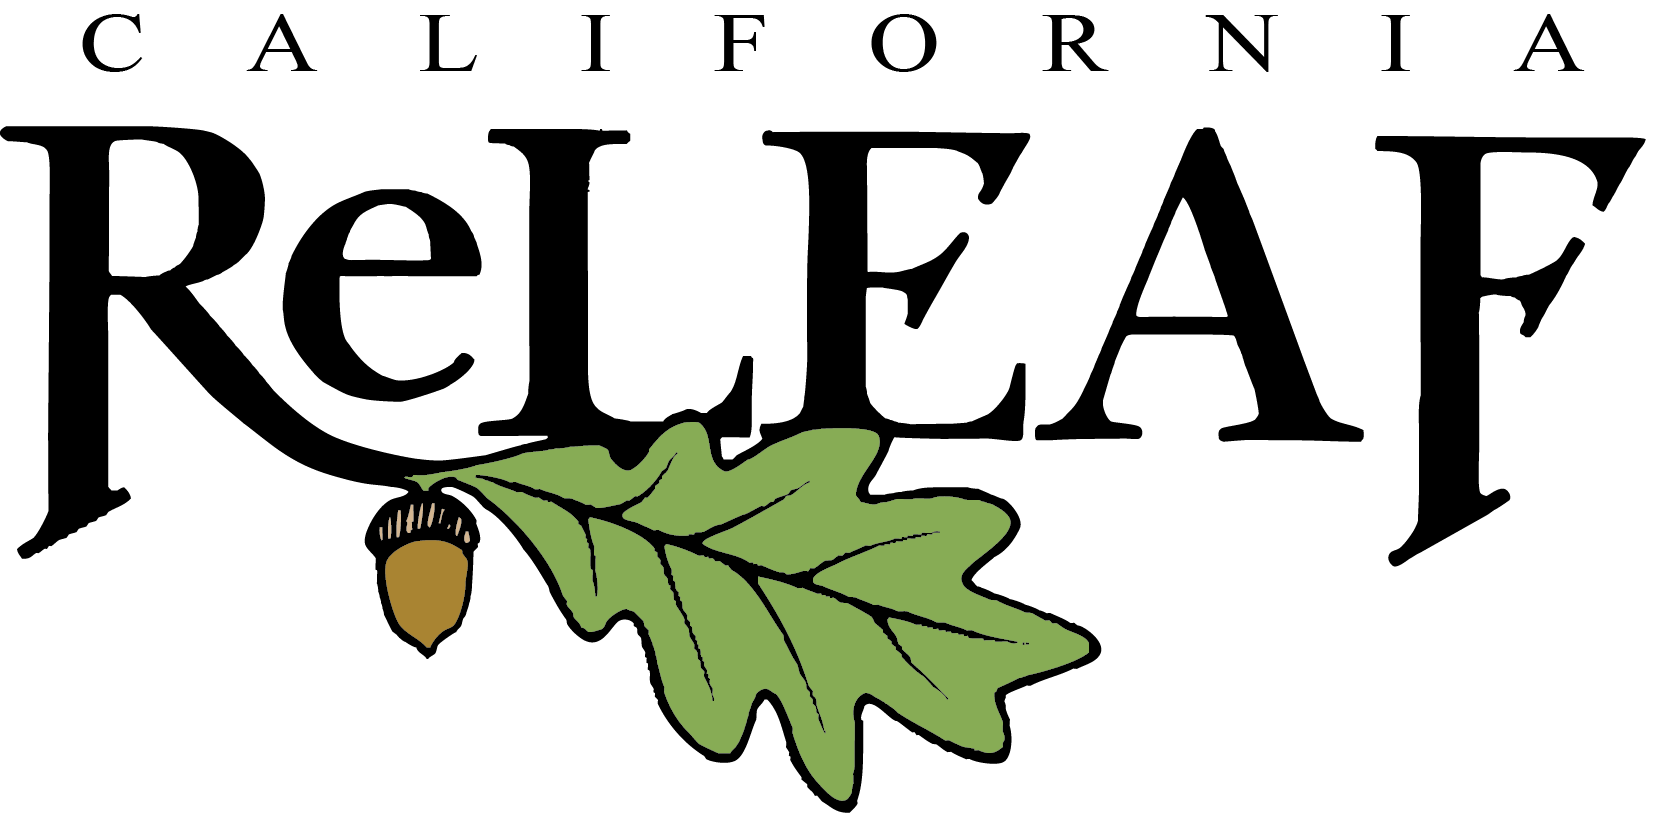 Equity and inclusion in. Diversity clipart tree logo